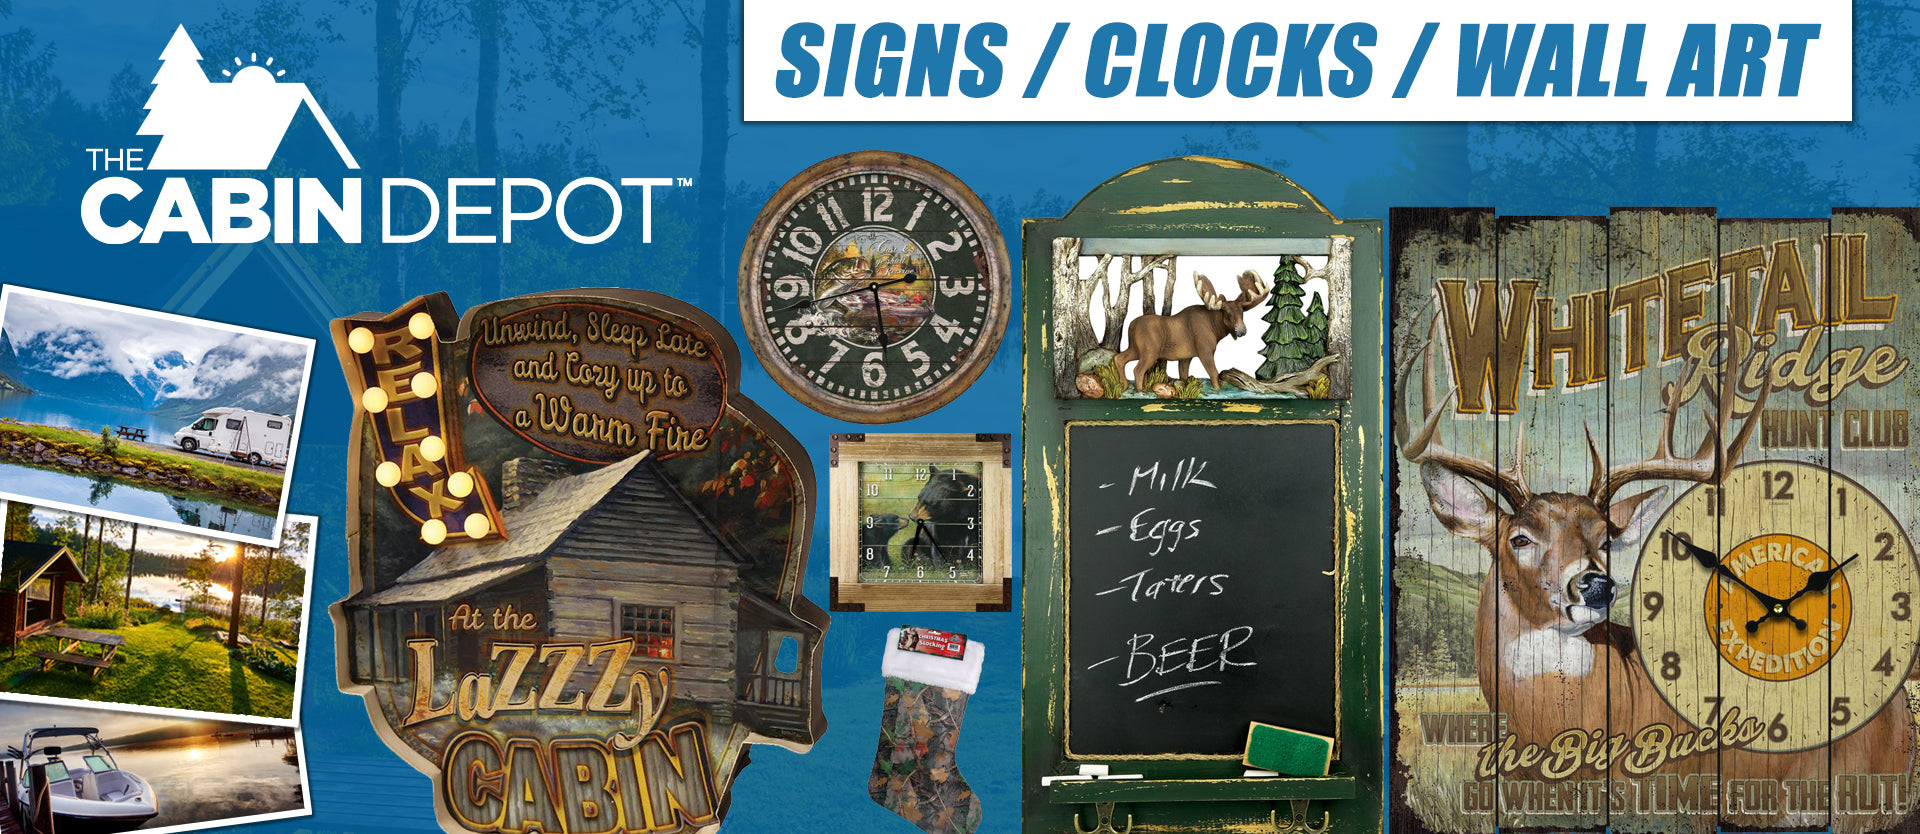 Wall Art Clocks Decor Signs The Cabin Depot ™ Off Grid Canada